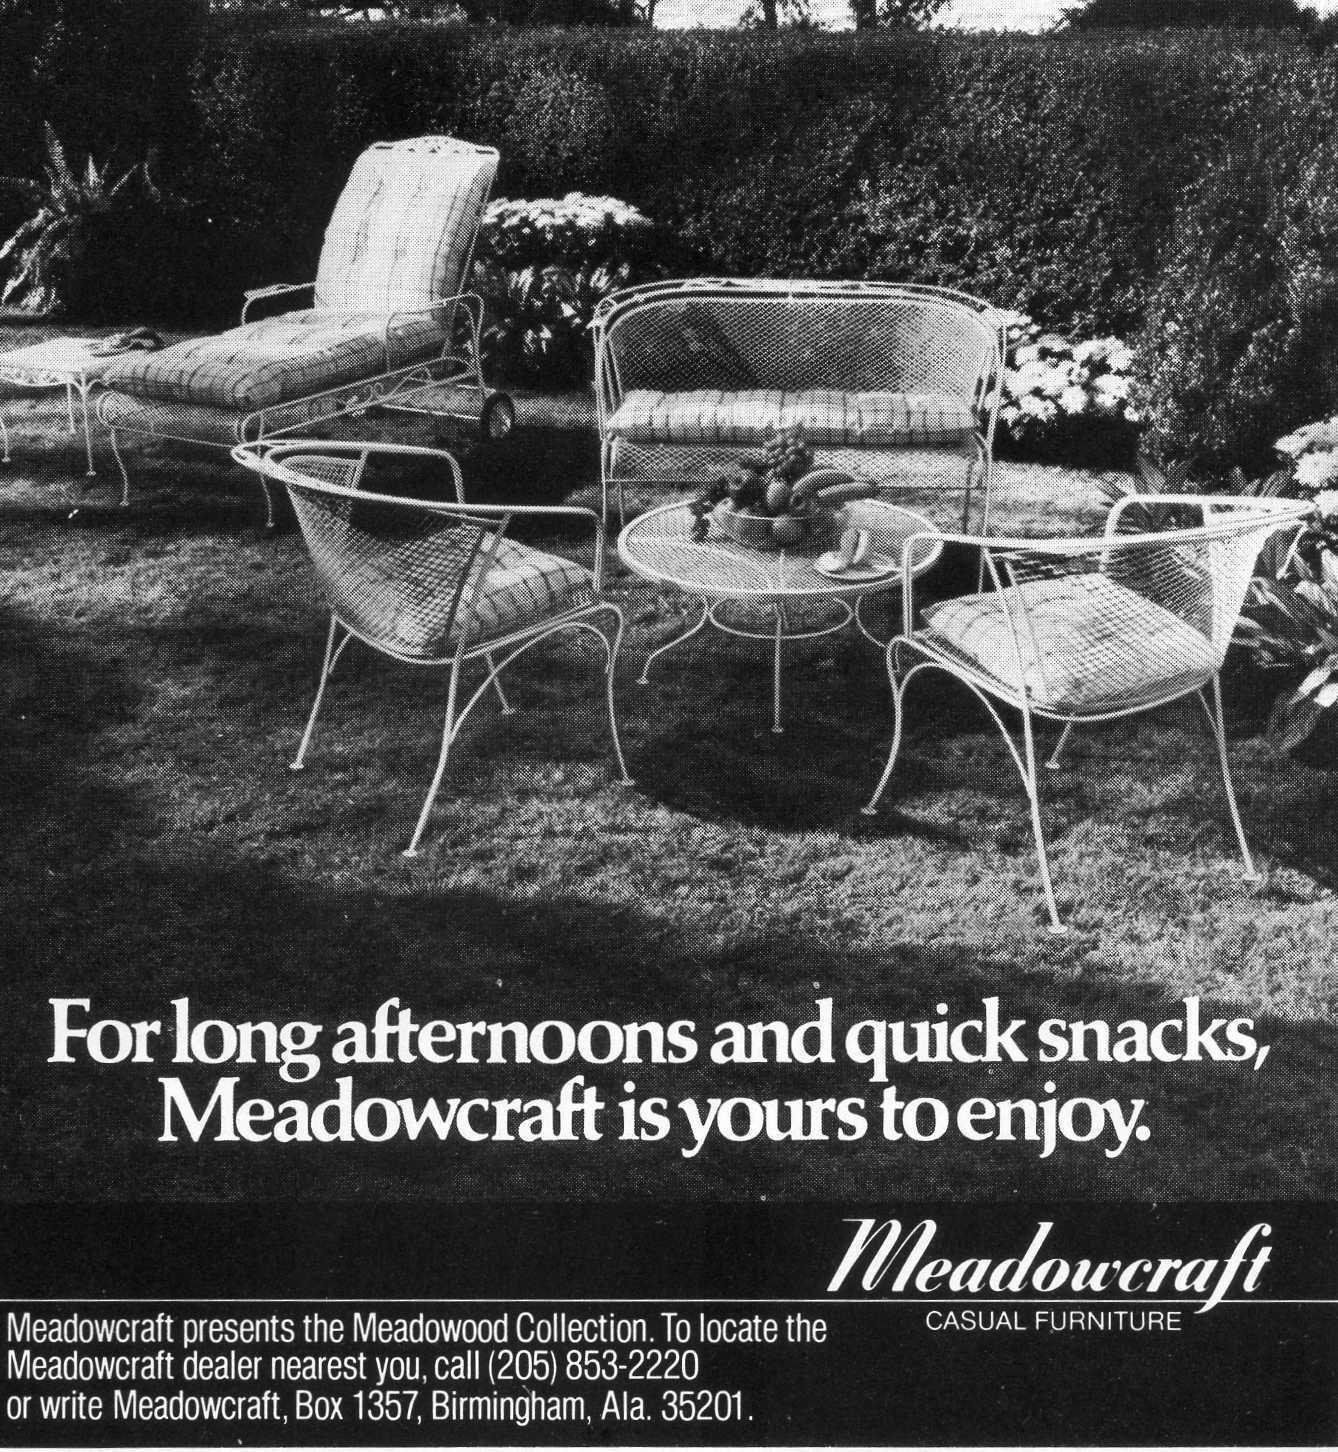 Meadowcraft 1960s Ad - Reliable Furniture Supplier